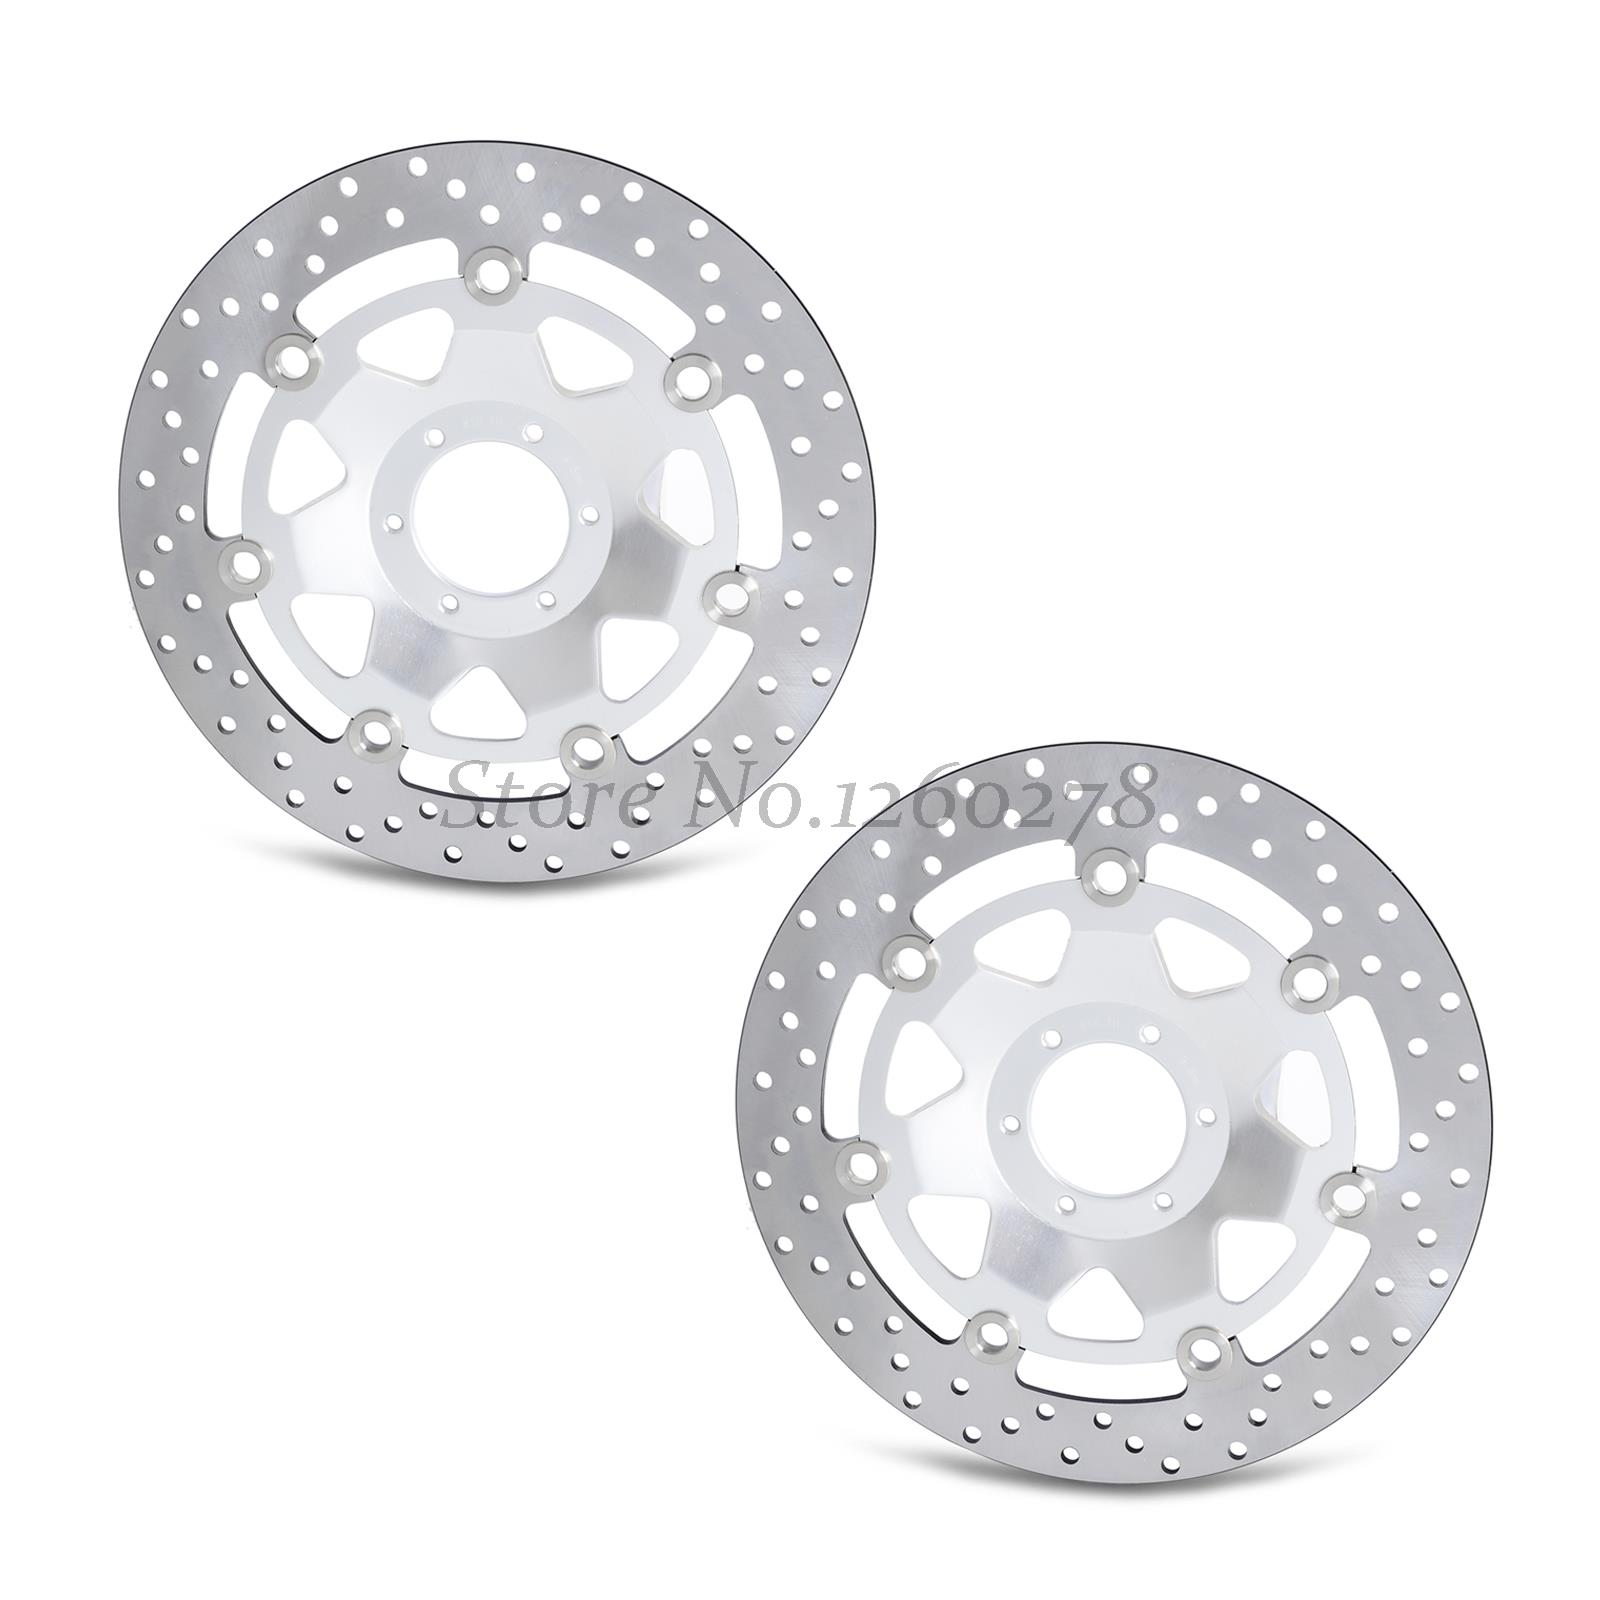 New Motorcycle Front Rotor Brake Disc For Honda CBR 600 900 VFR 800 XL 1000 GL